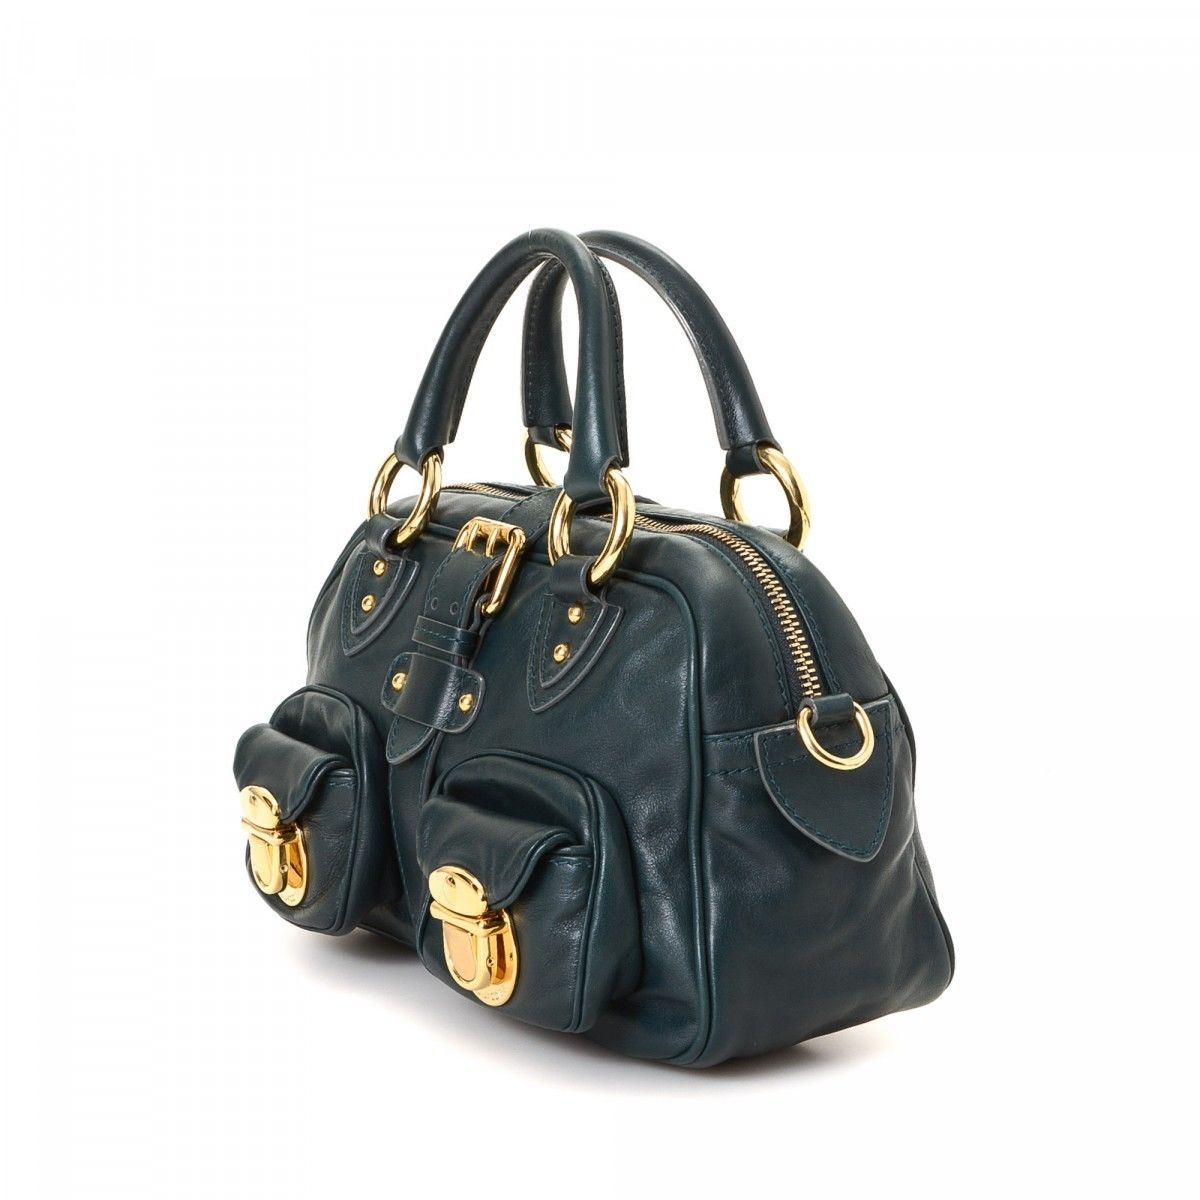 d322af7a2bc Marc Jacobs Two Way Bag. LXRandCo guarantees this is an authentic vintage  Marc Jacobs Blake ...